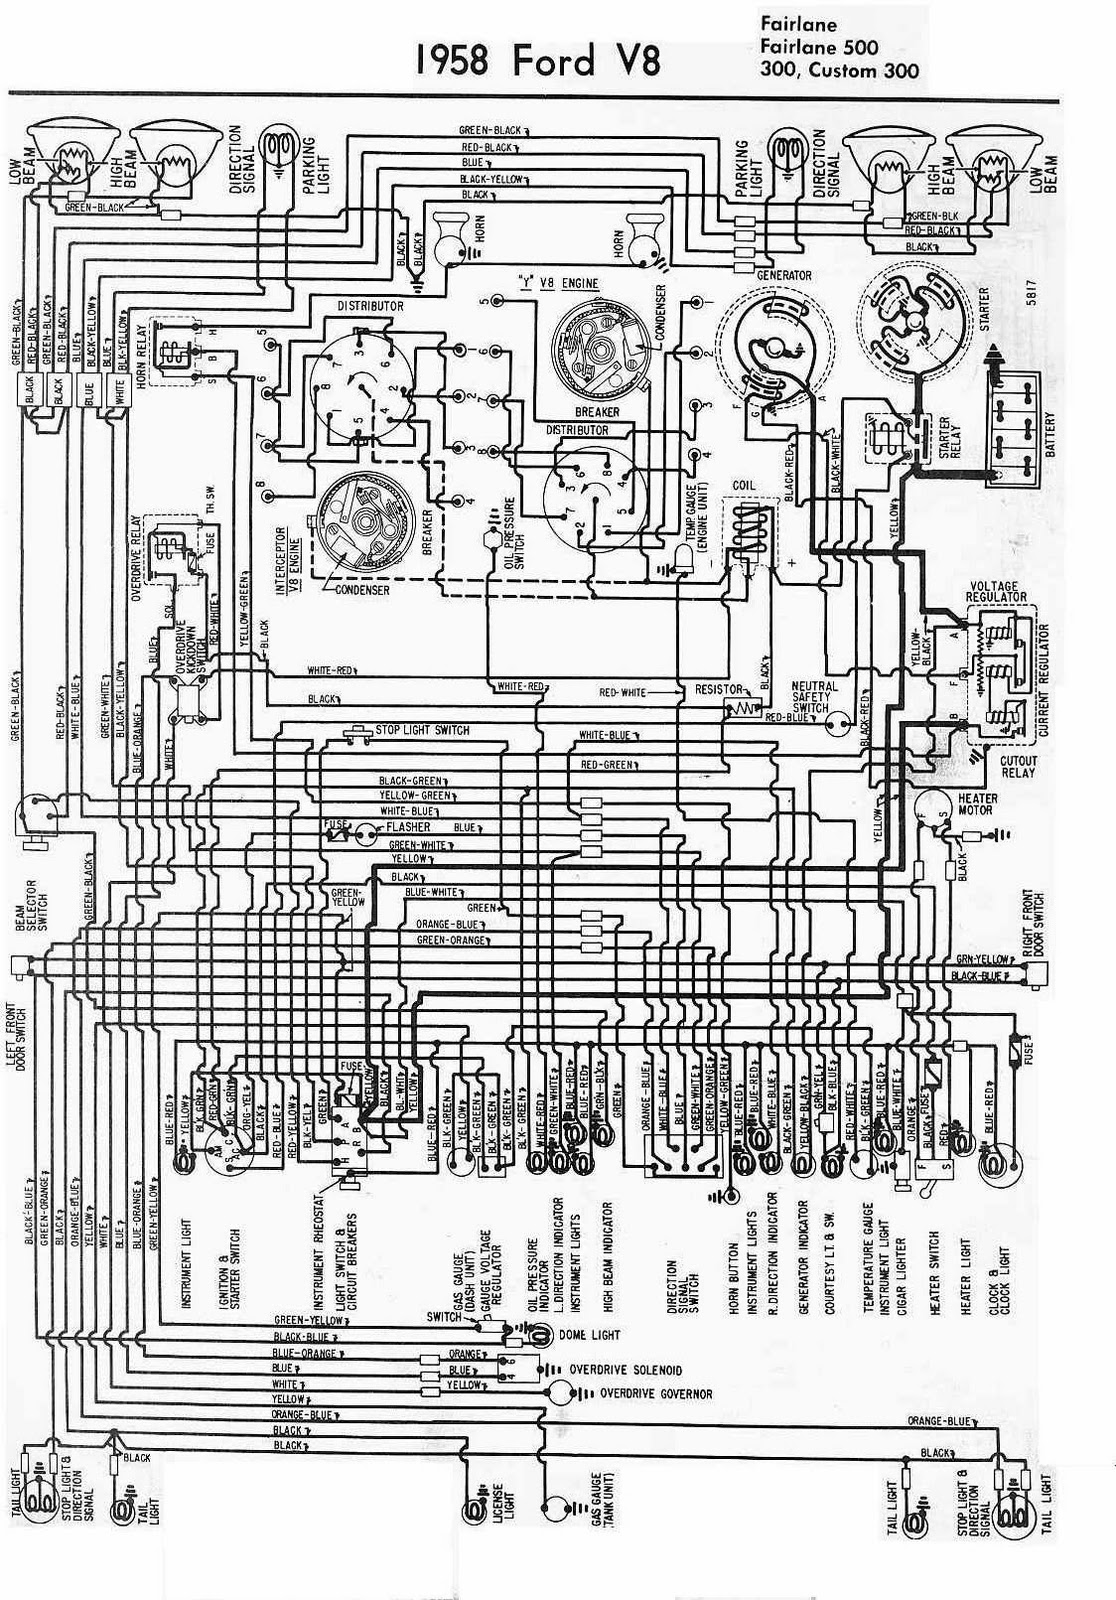 small resolution of 1955 ford thunderbird also ford falcon fuse panel diagram 1966 ford thunderbird fuse panel diagram as well 1958 ford thunderbird